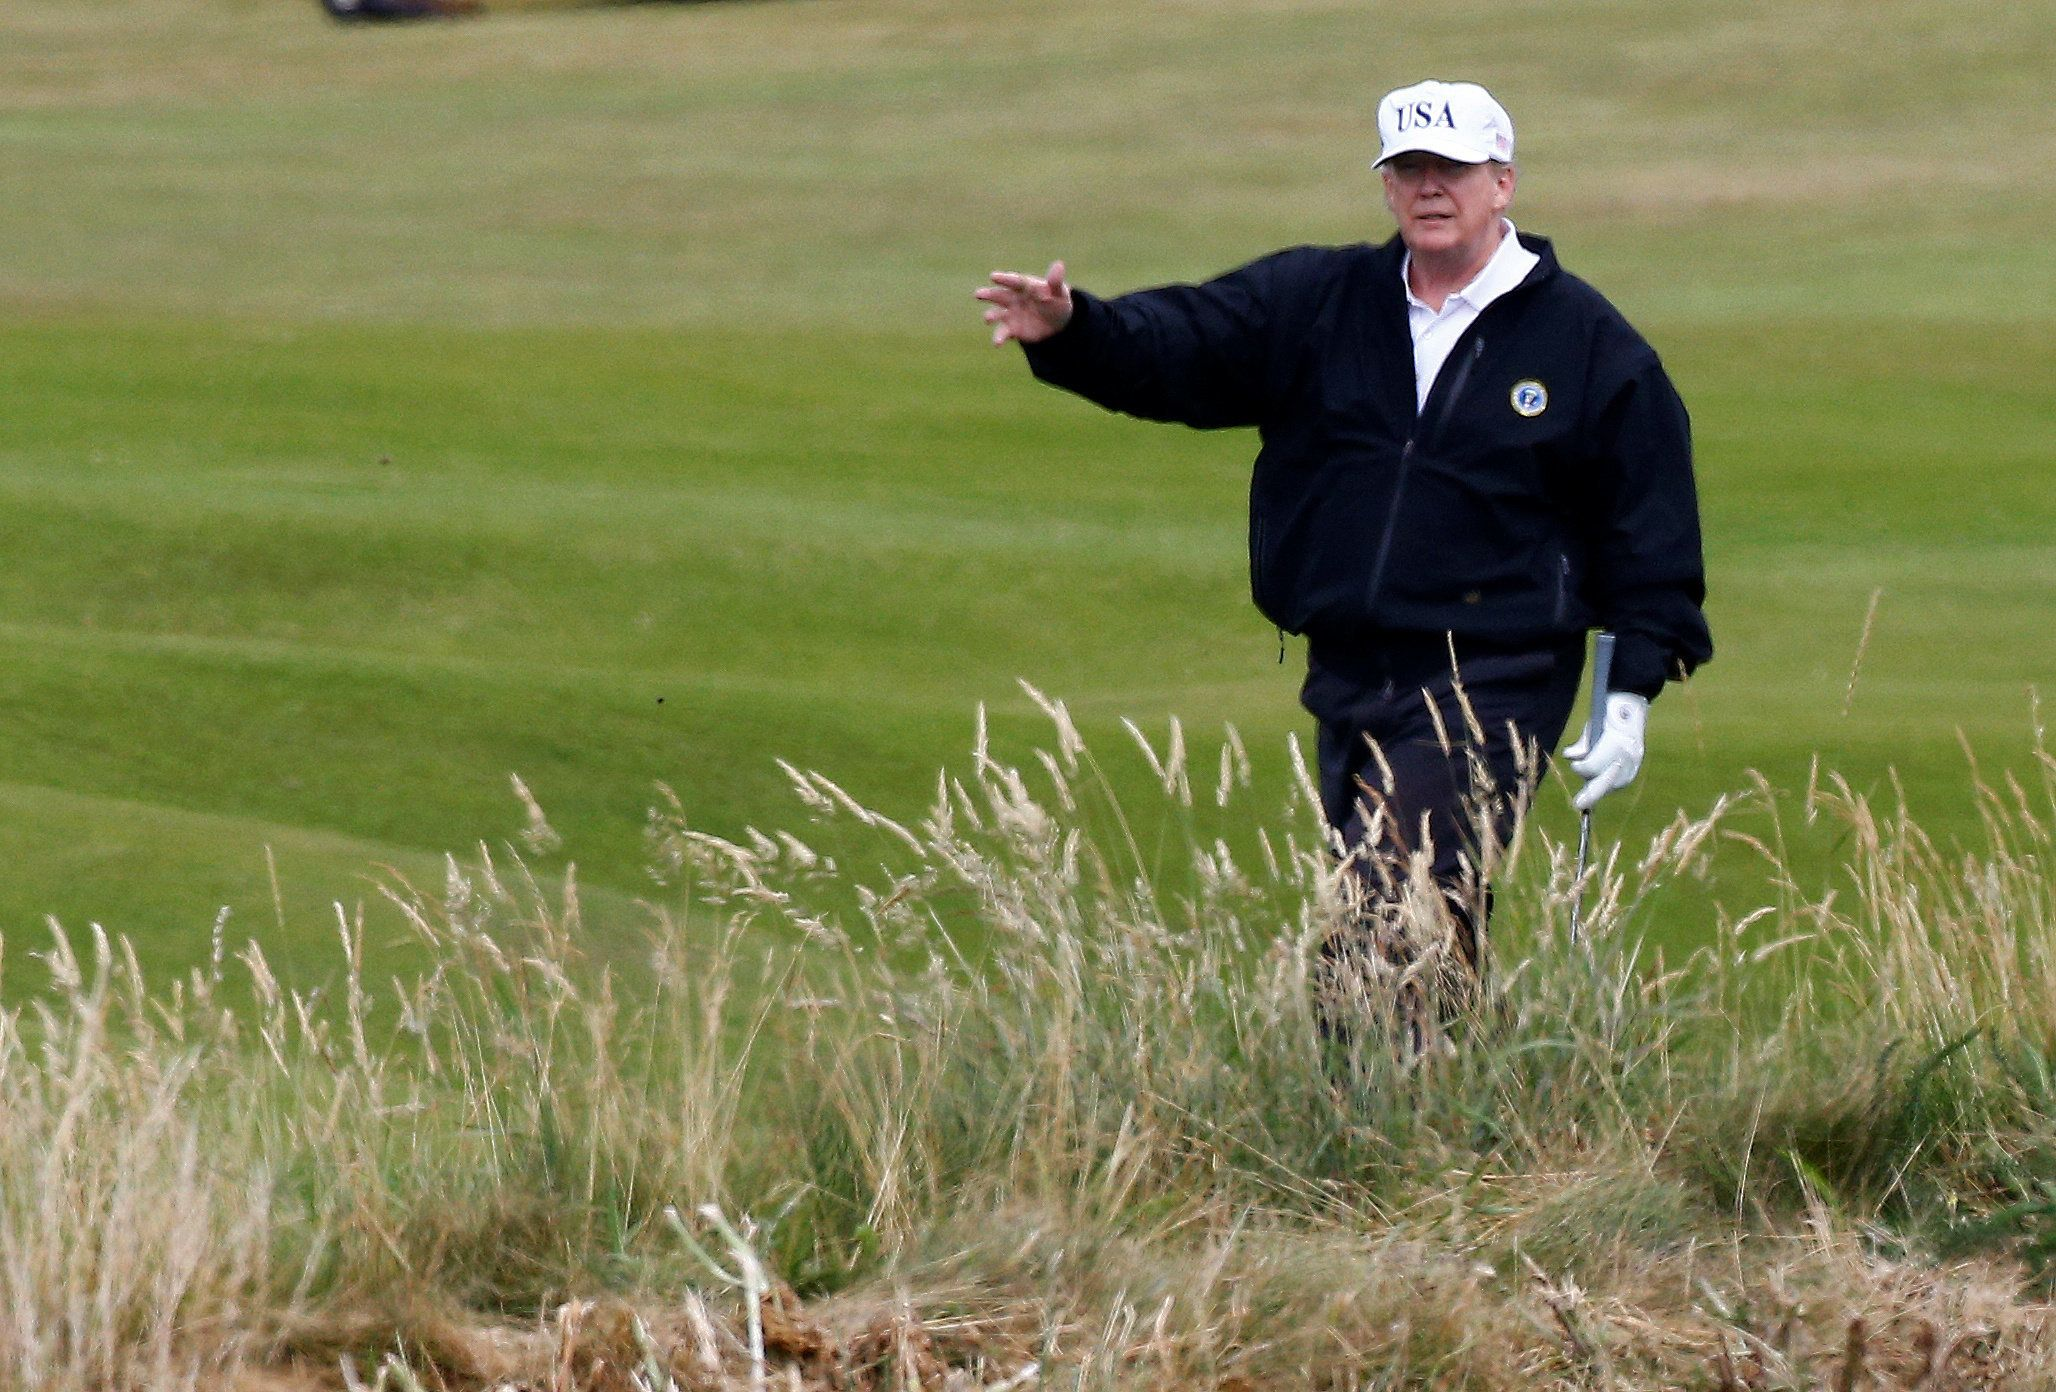 U.S. President Donald Trump gestures as he walks on the course of his golf resort, in Turnberry, Scotland  July 14, 2018.  REUTERS/Henry Nicholls